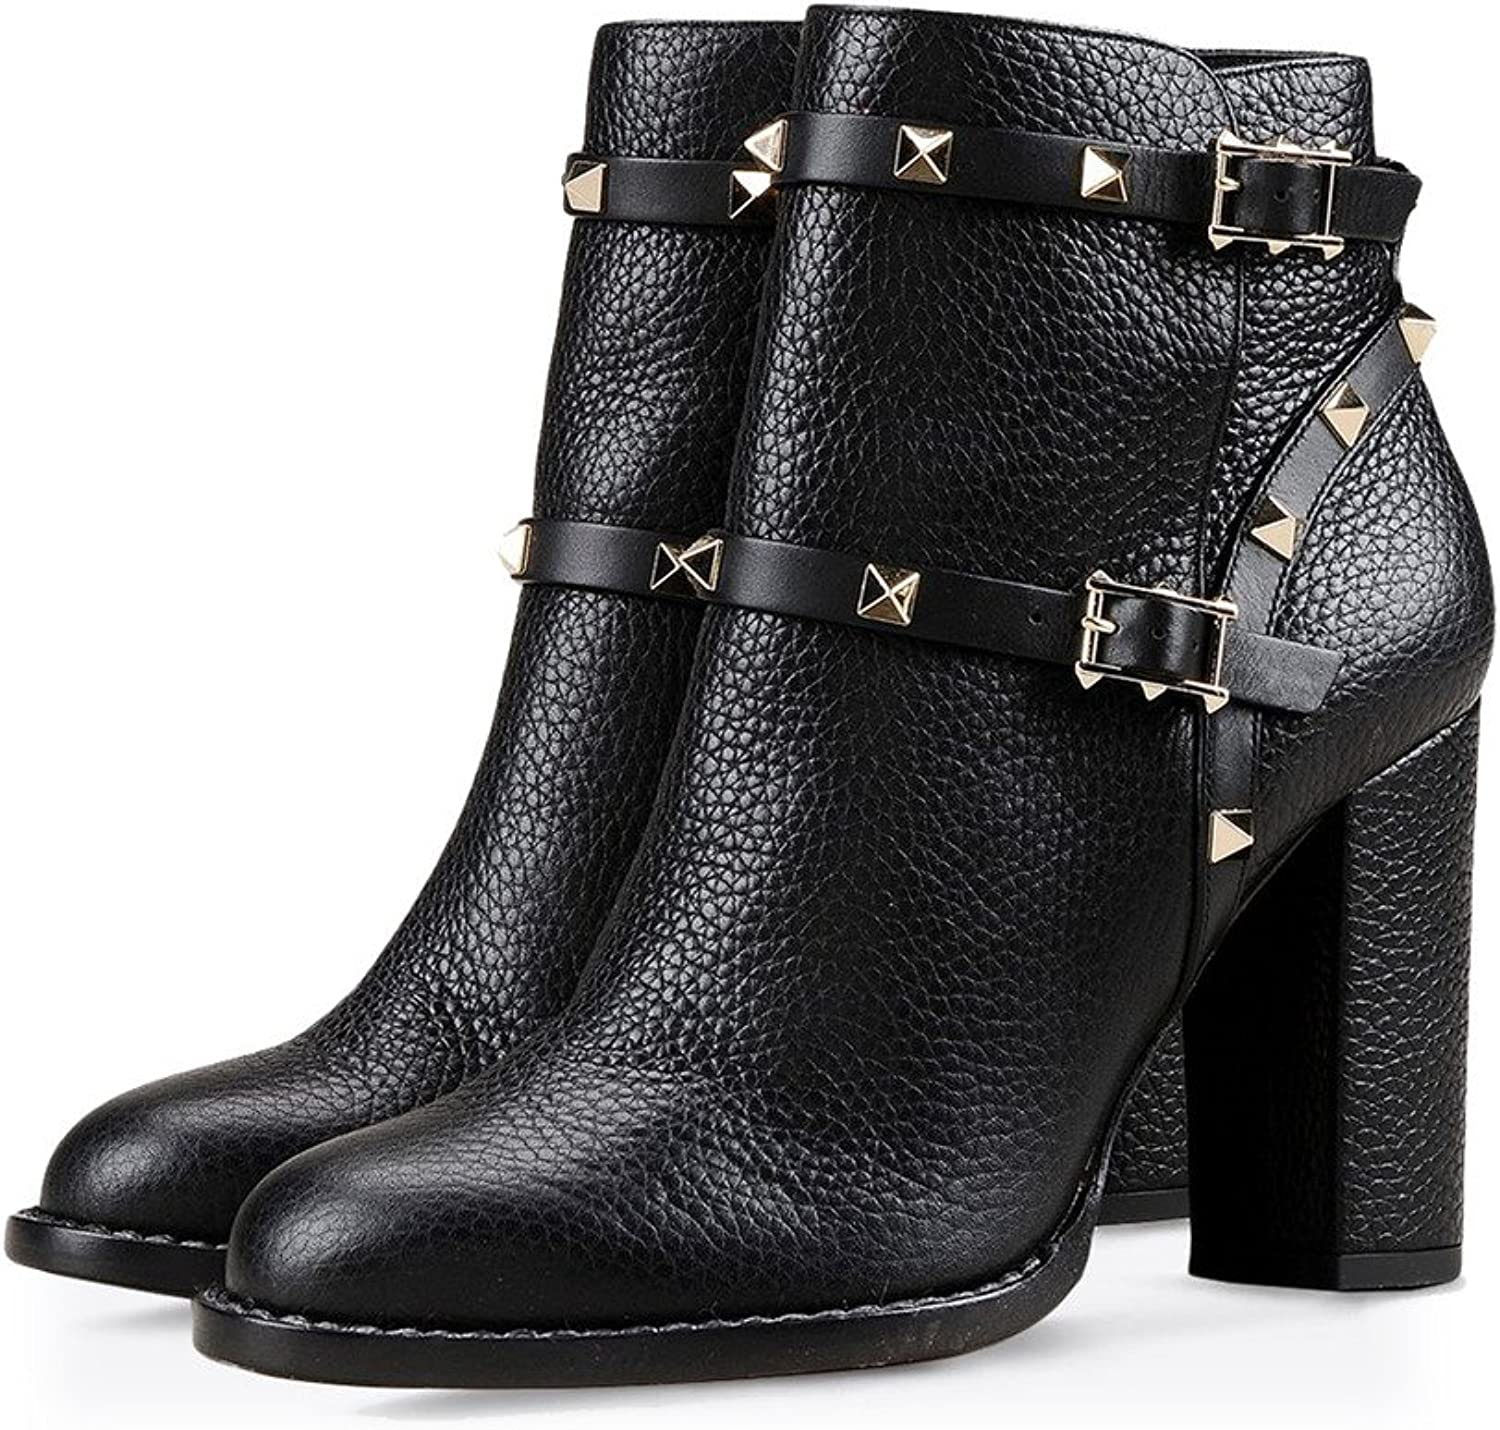 Amy Q Women's Rivets Round Toe Buckle Strap Square Heel Ankle Winter Boots For Casual Slip On shoes